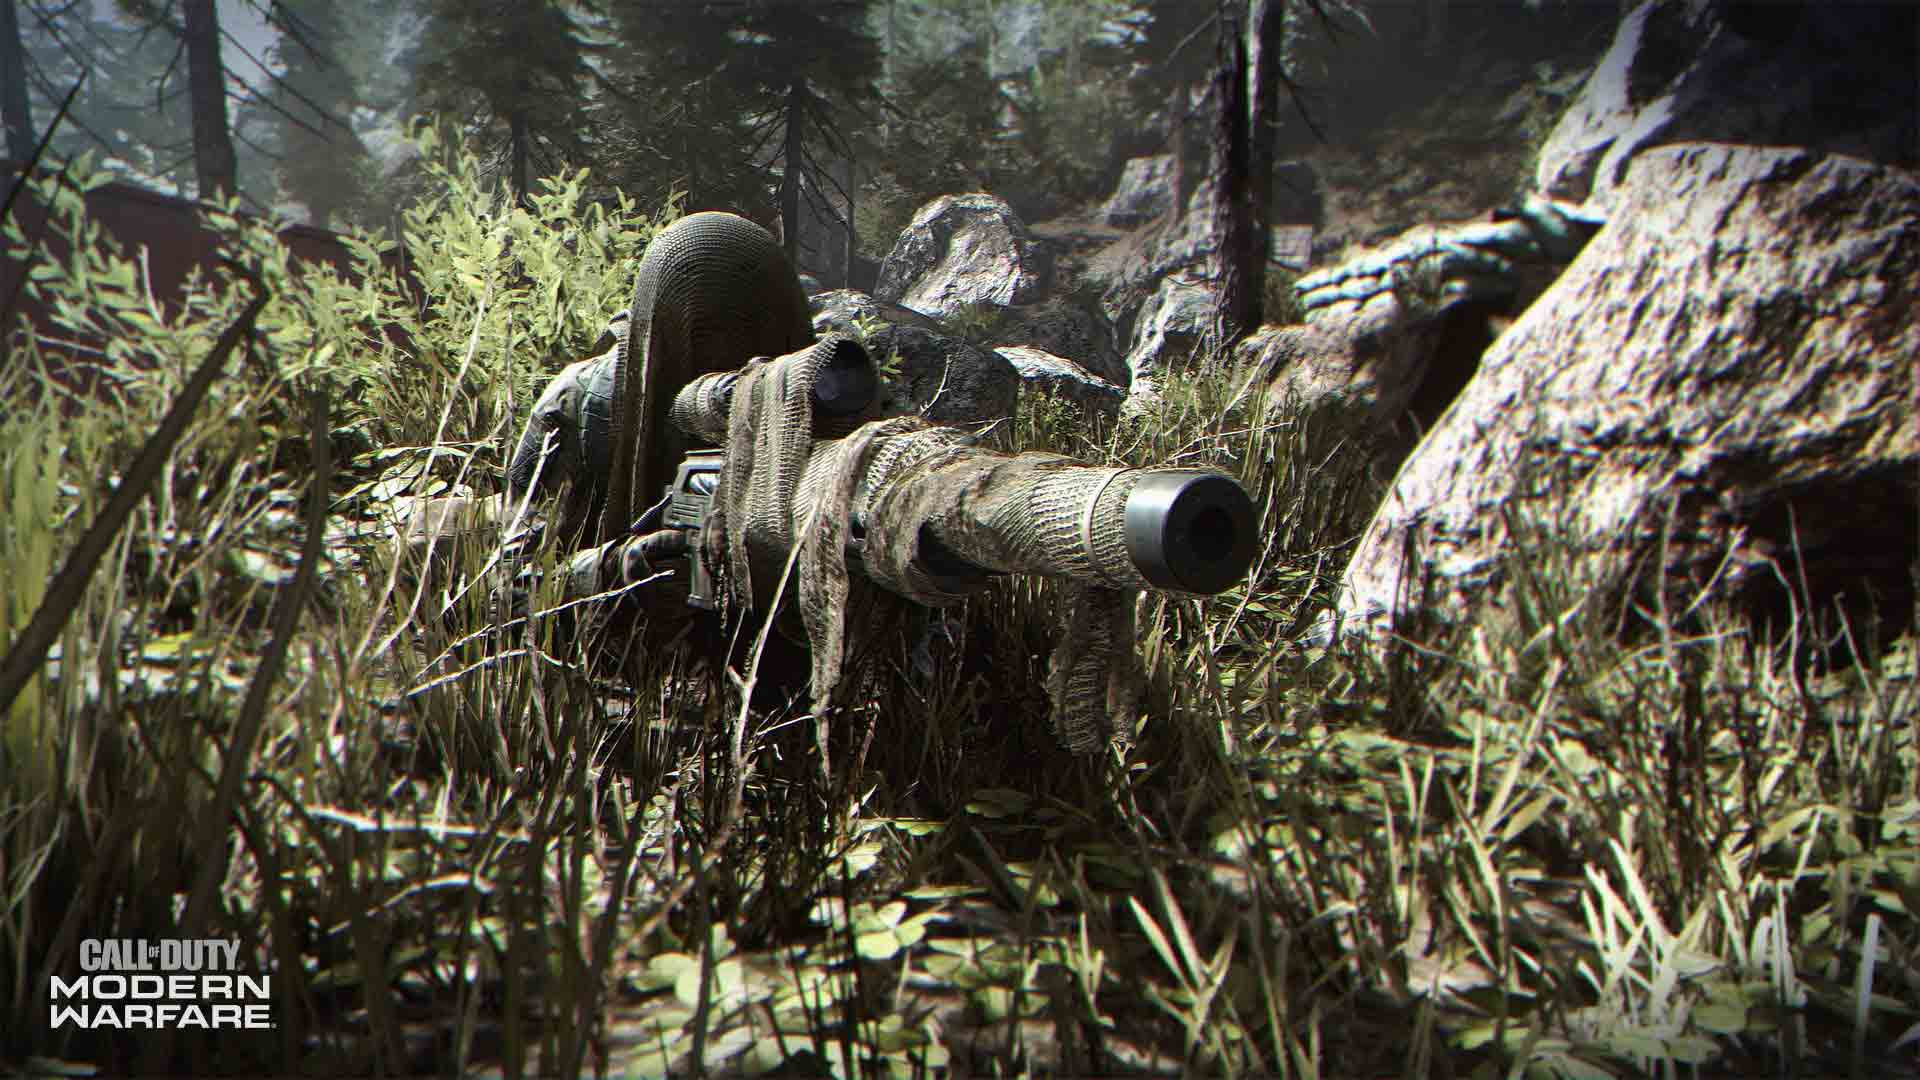 Call Of Duty Modern Warfare Gameplay To Debut Soon Hints